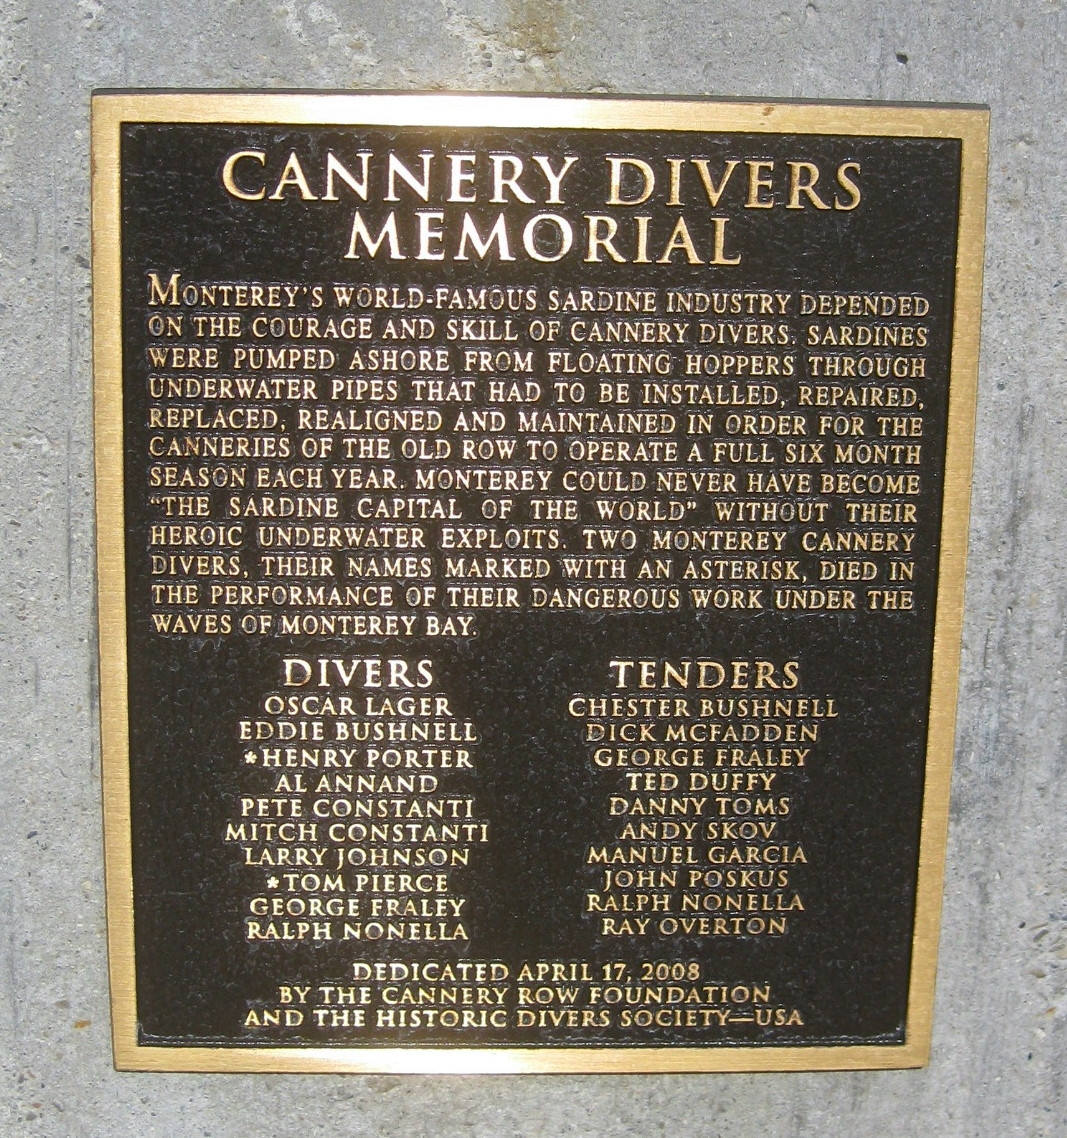 Cannery Divers Memorial Marker